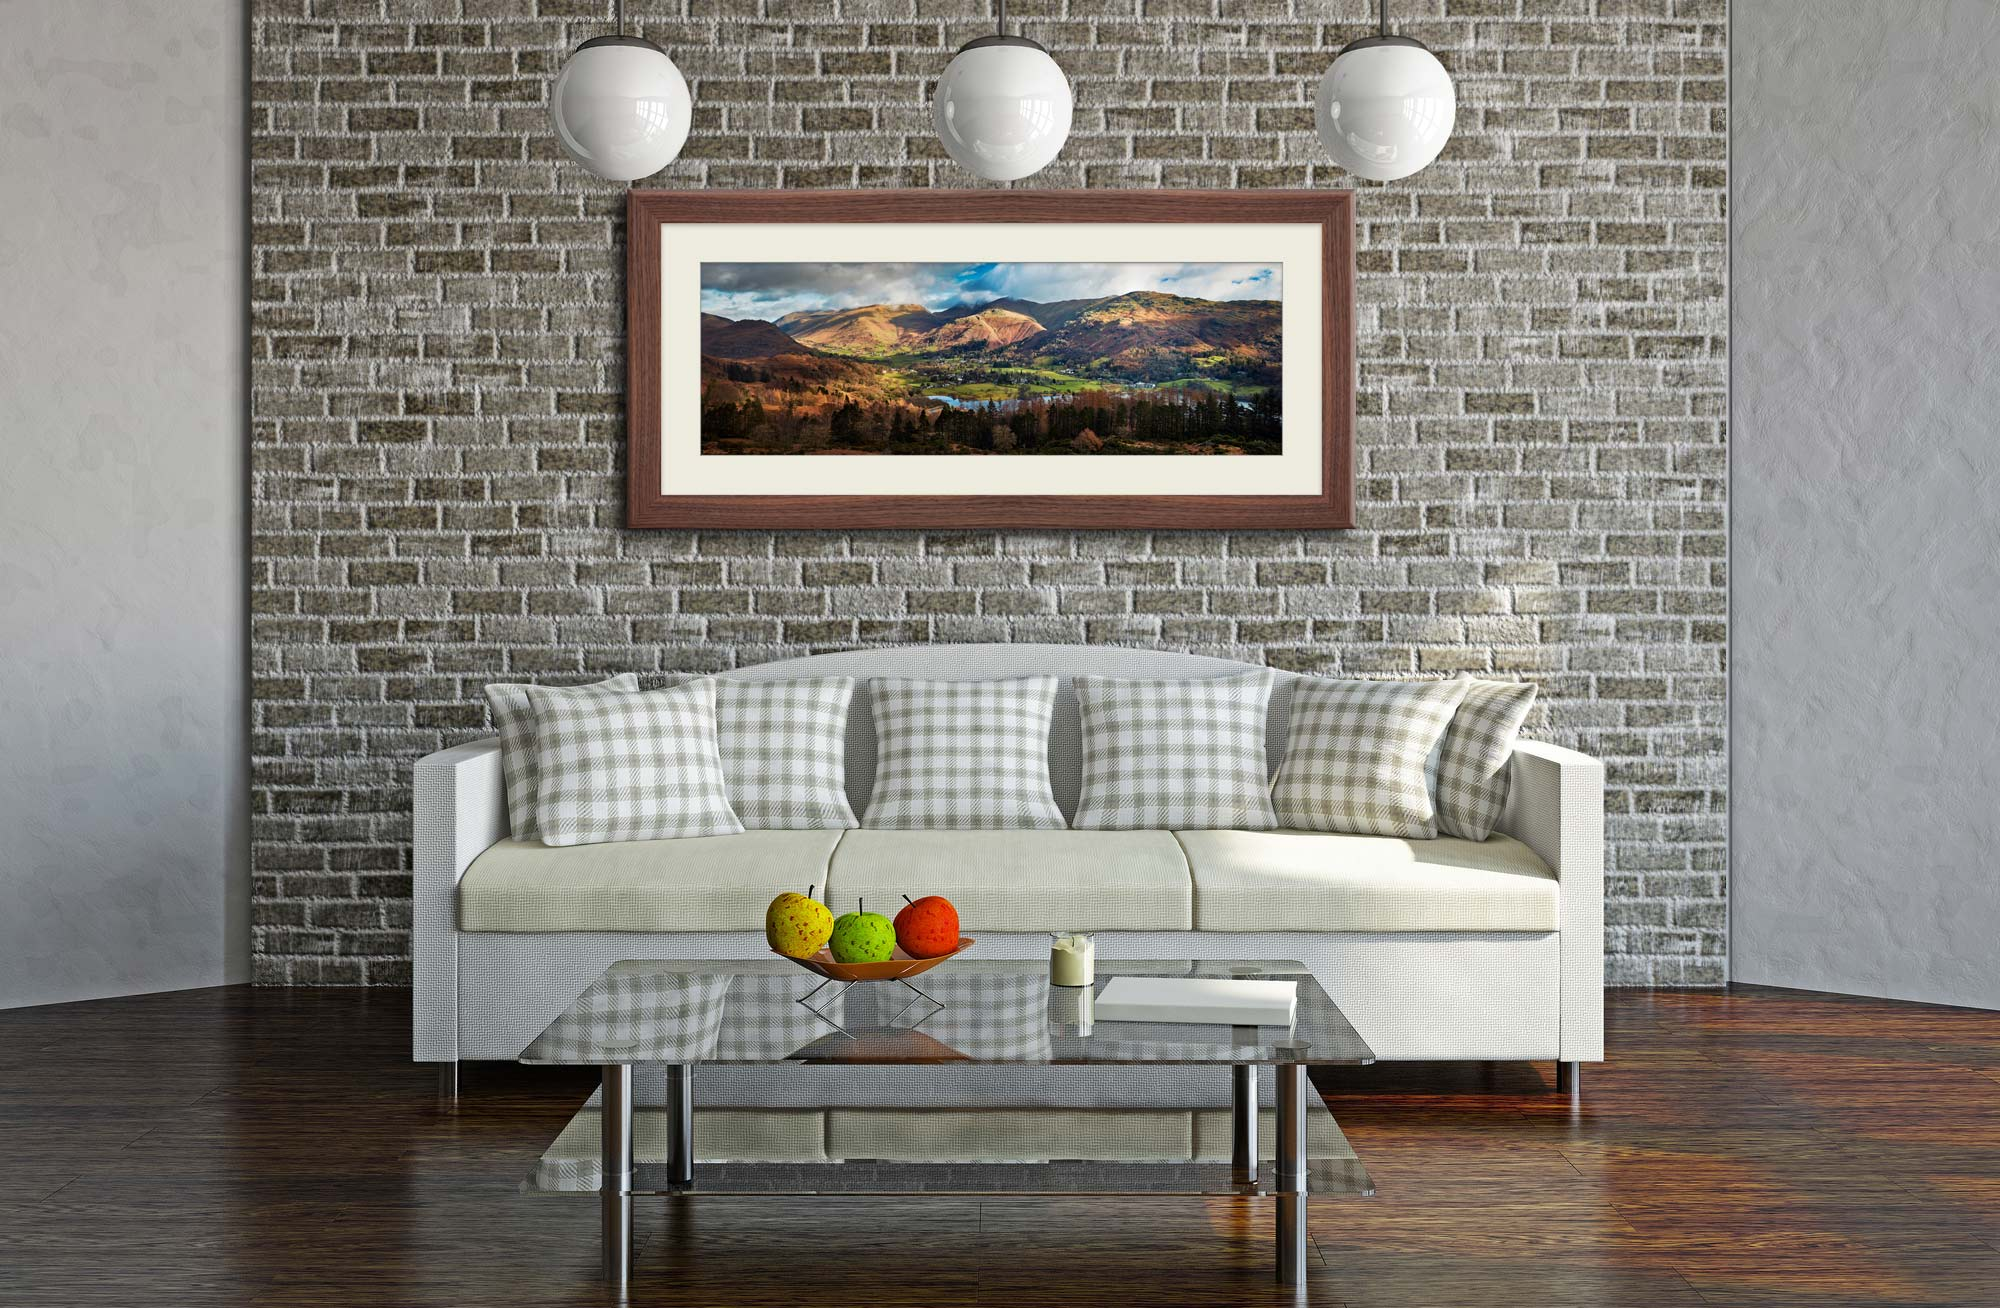 Grasmere Village Panorama - Framed Print with Mount on Wall